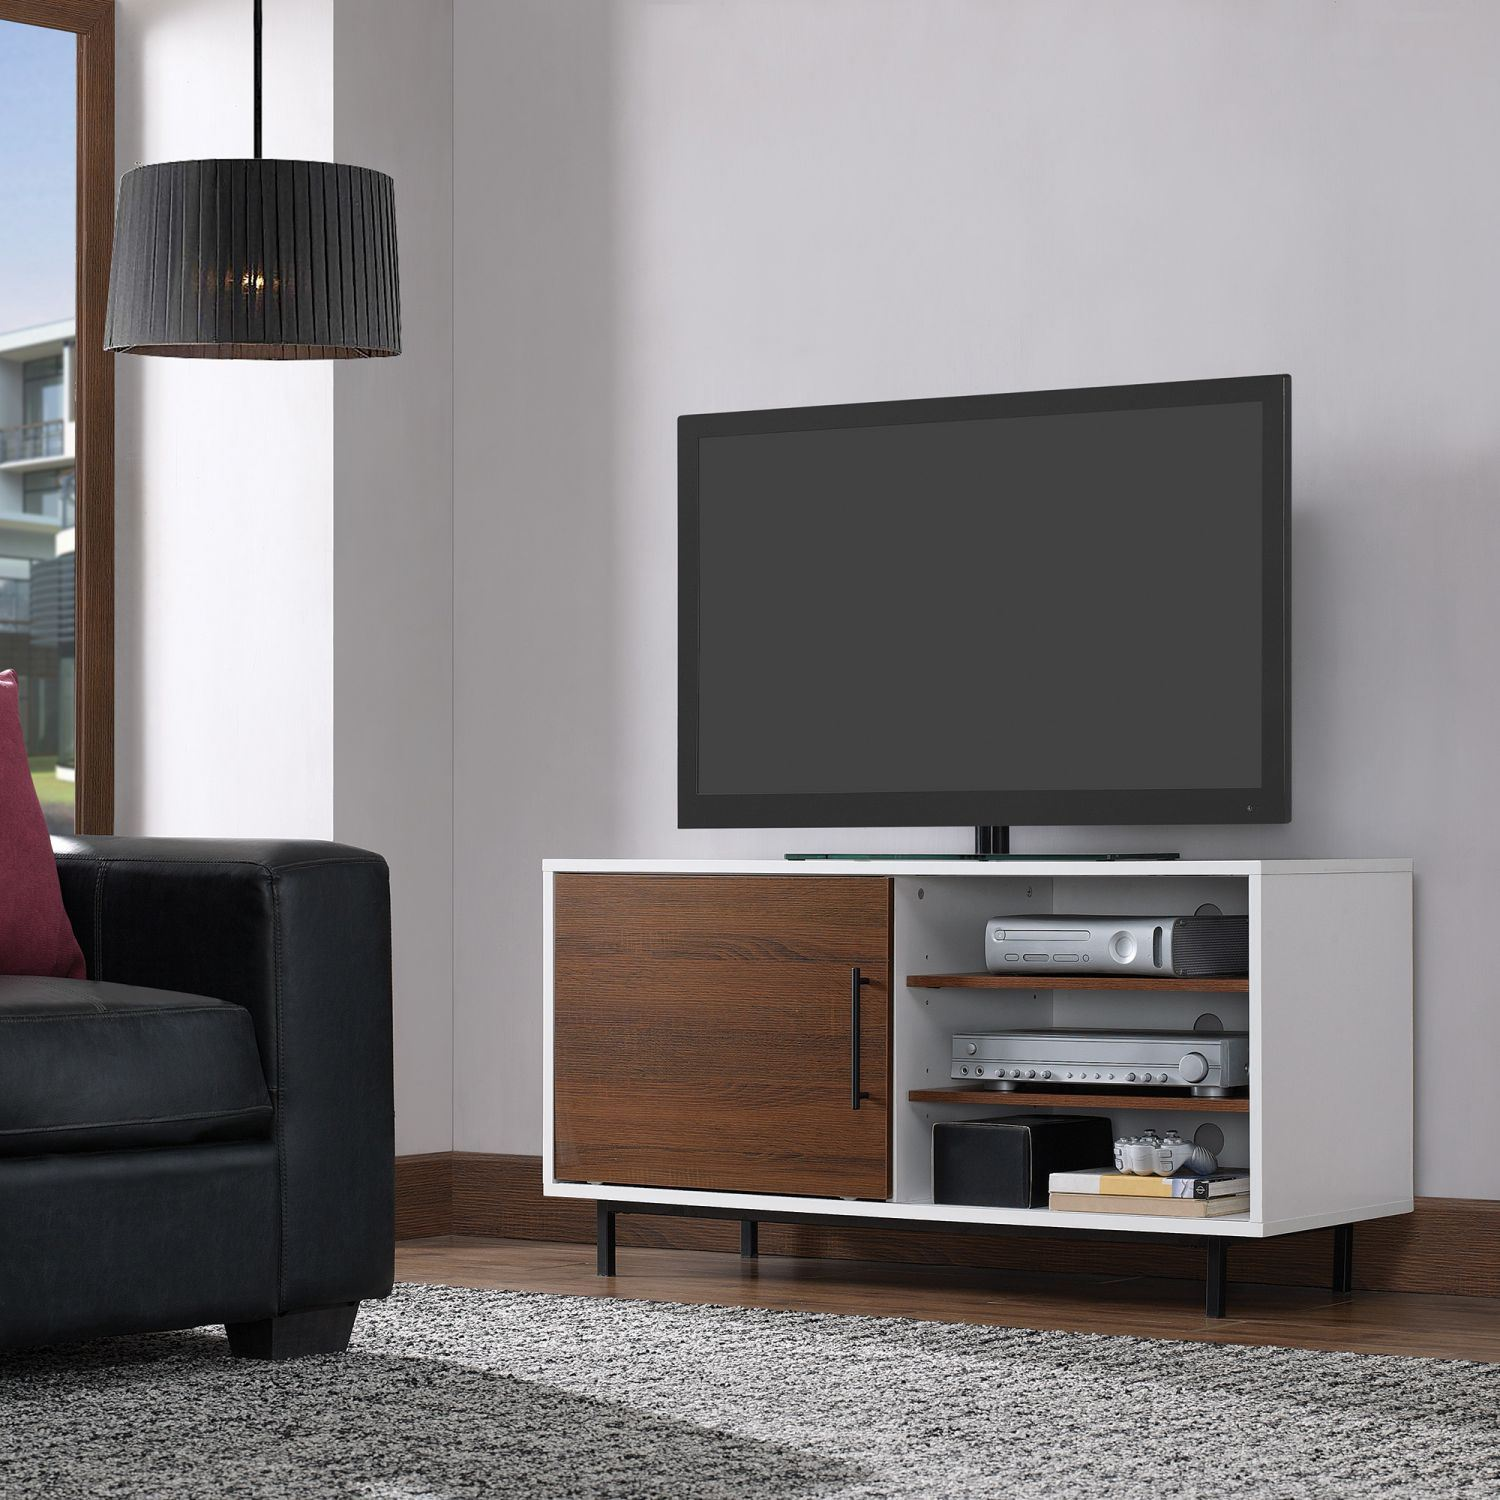 Wakeman Two Tone Tv Stand D Tc48 6160 Nt01 Classic Flame Twin